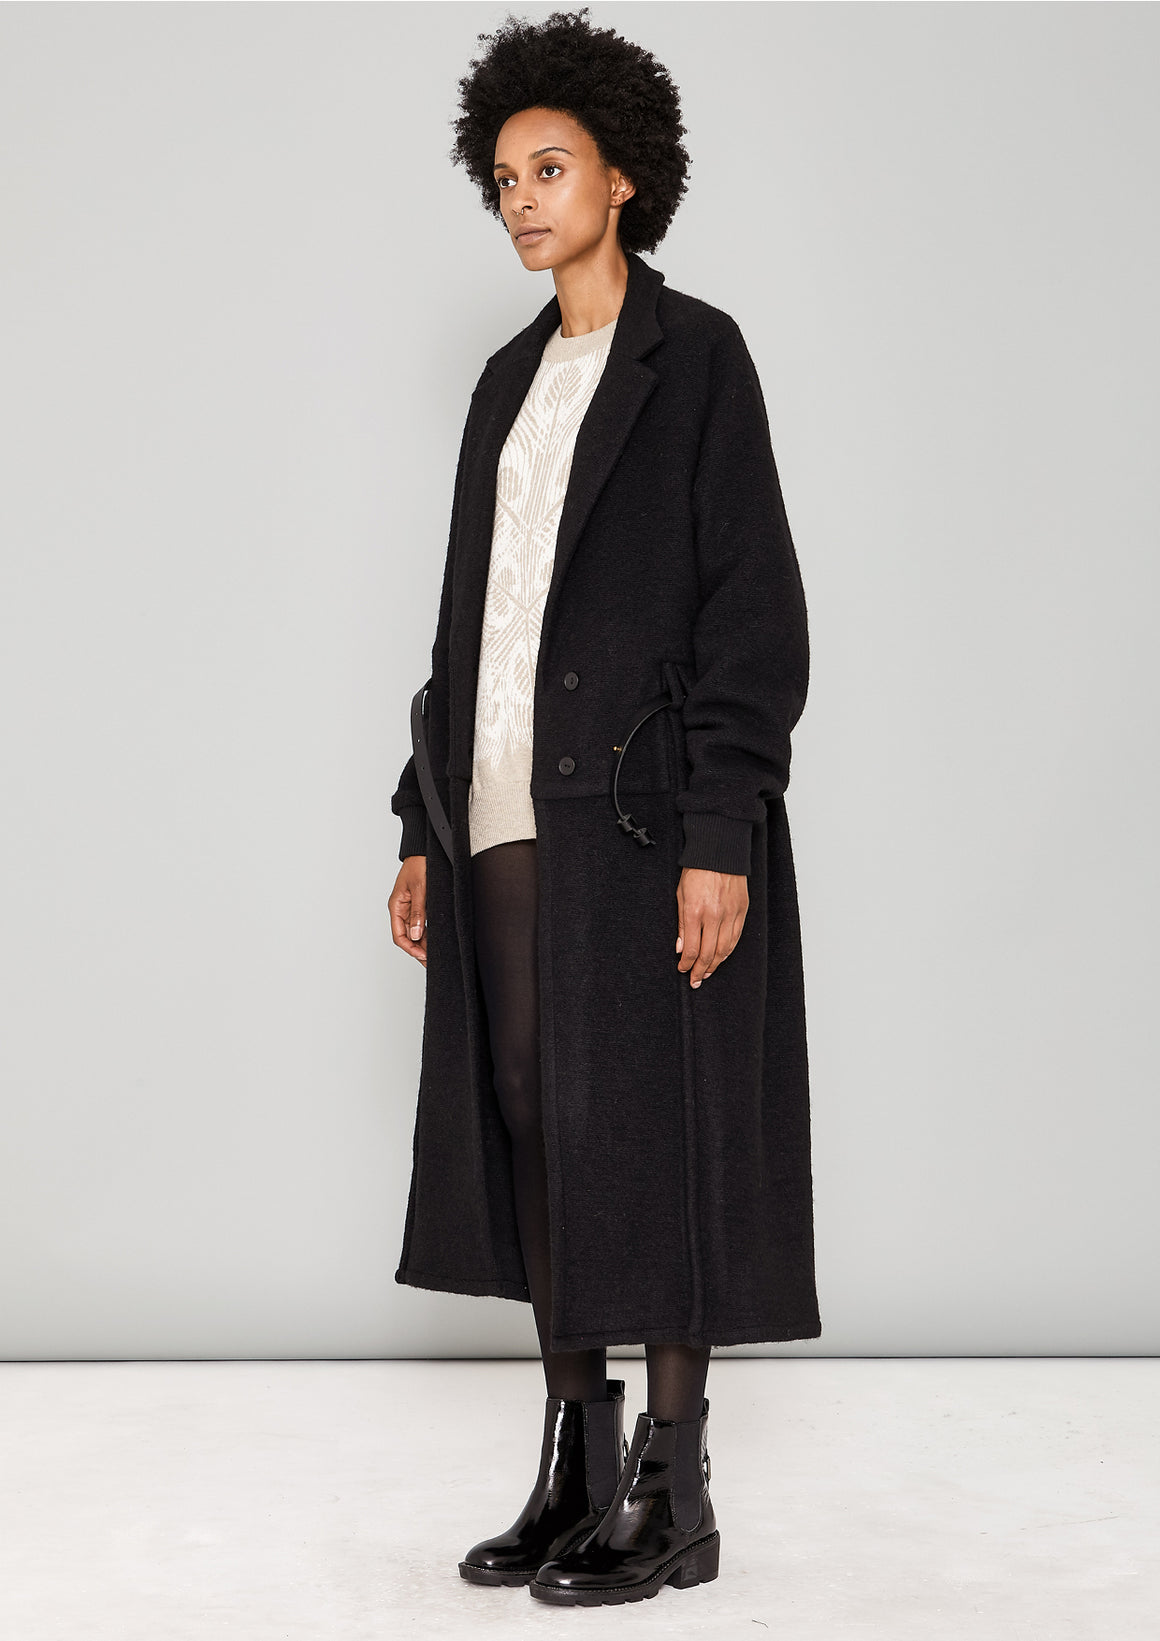 COAT LONG - WOOL BLEND black - BERENIK